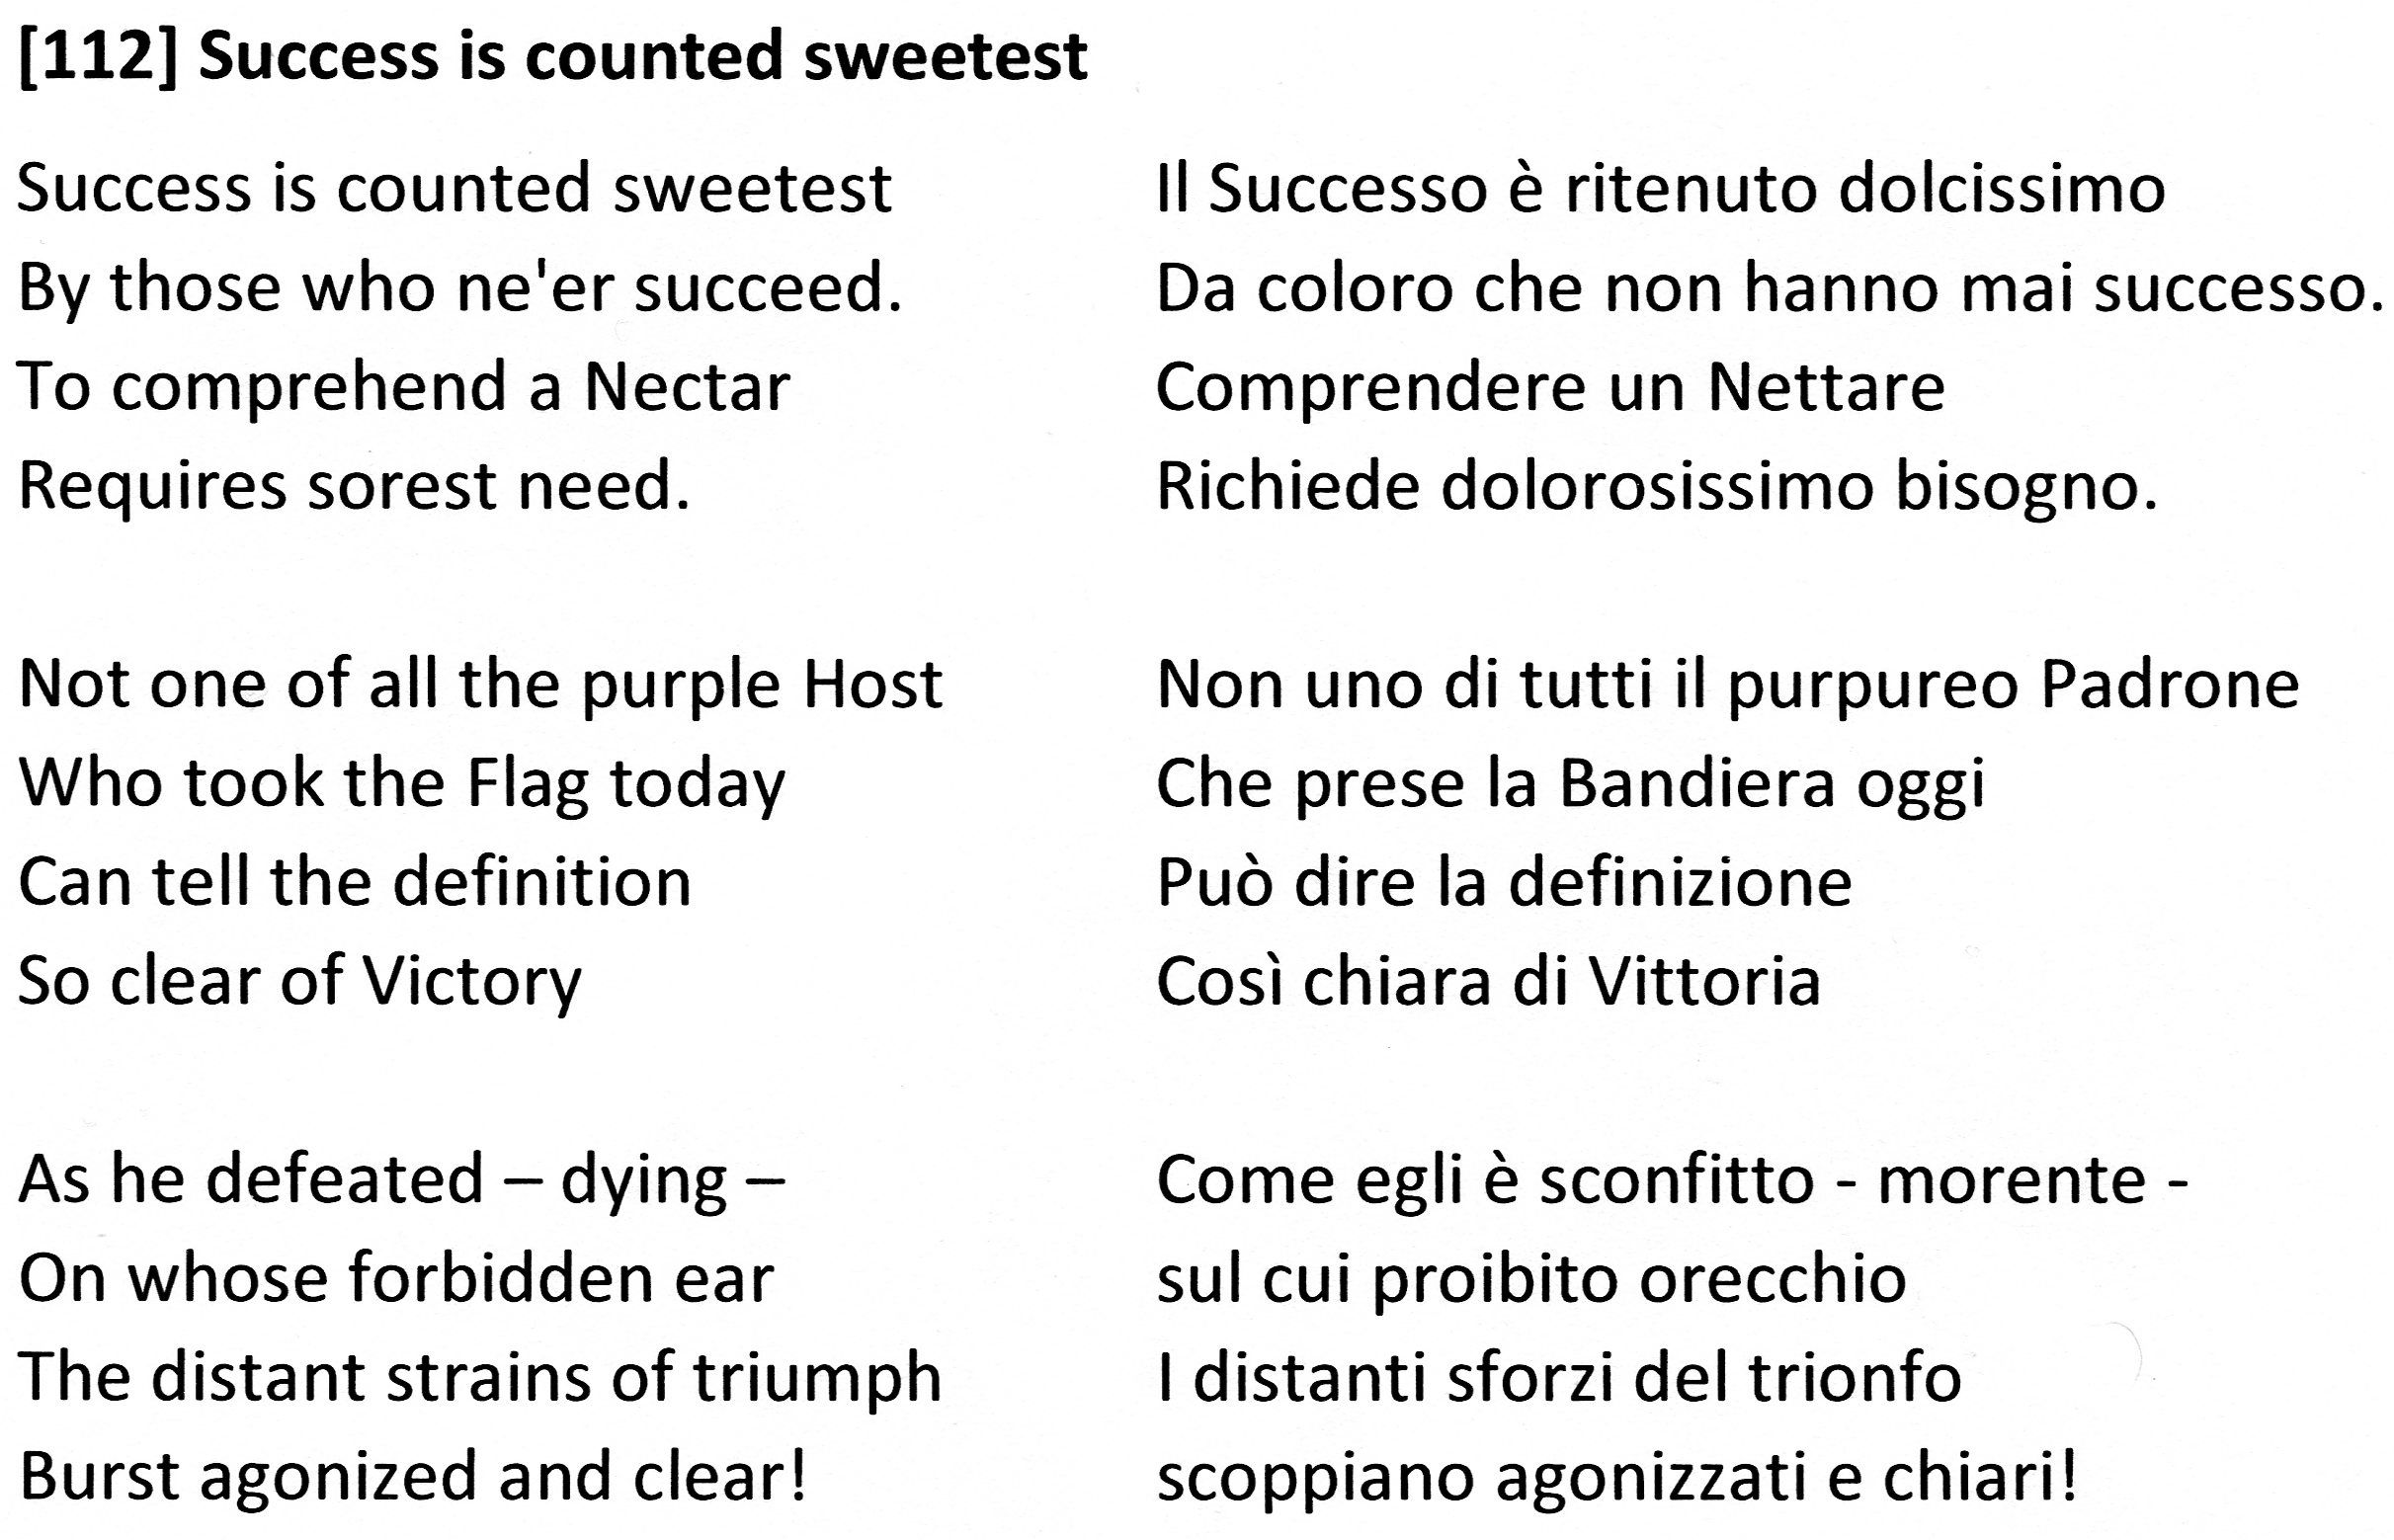 Dickensons color caste denomination - 112 Success Is Counted Sweetest Il Successo Ritenuto Dolcissimo Emily Dickinson